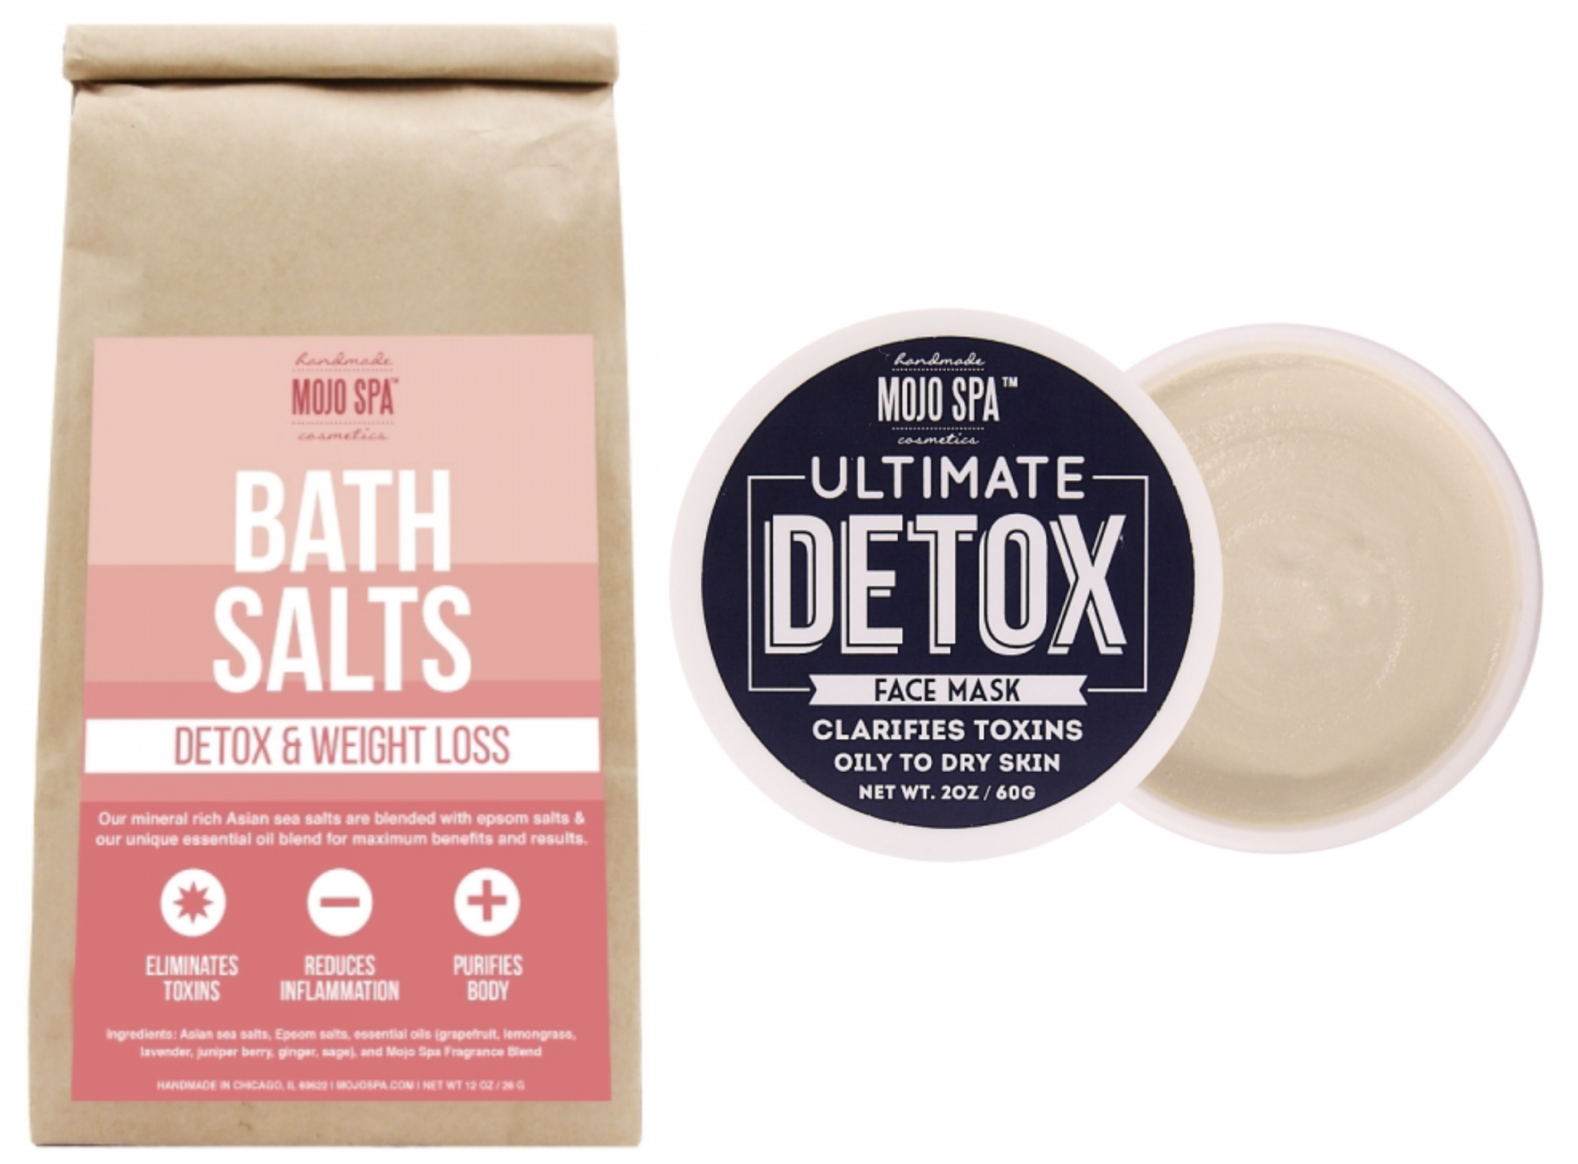 Mojo Spa Bath Salts Detox Mask Review.png